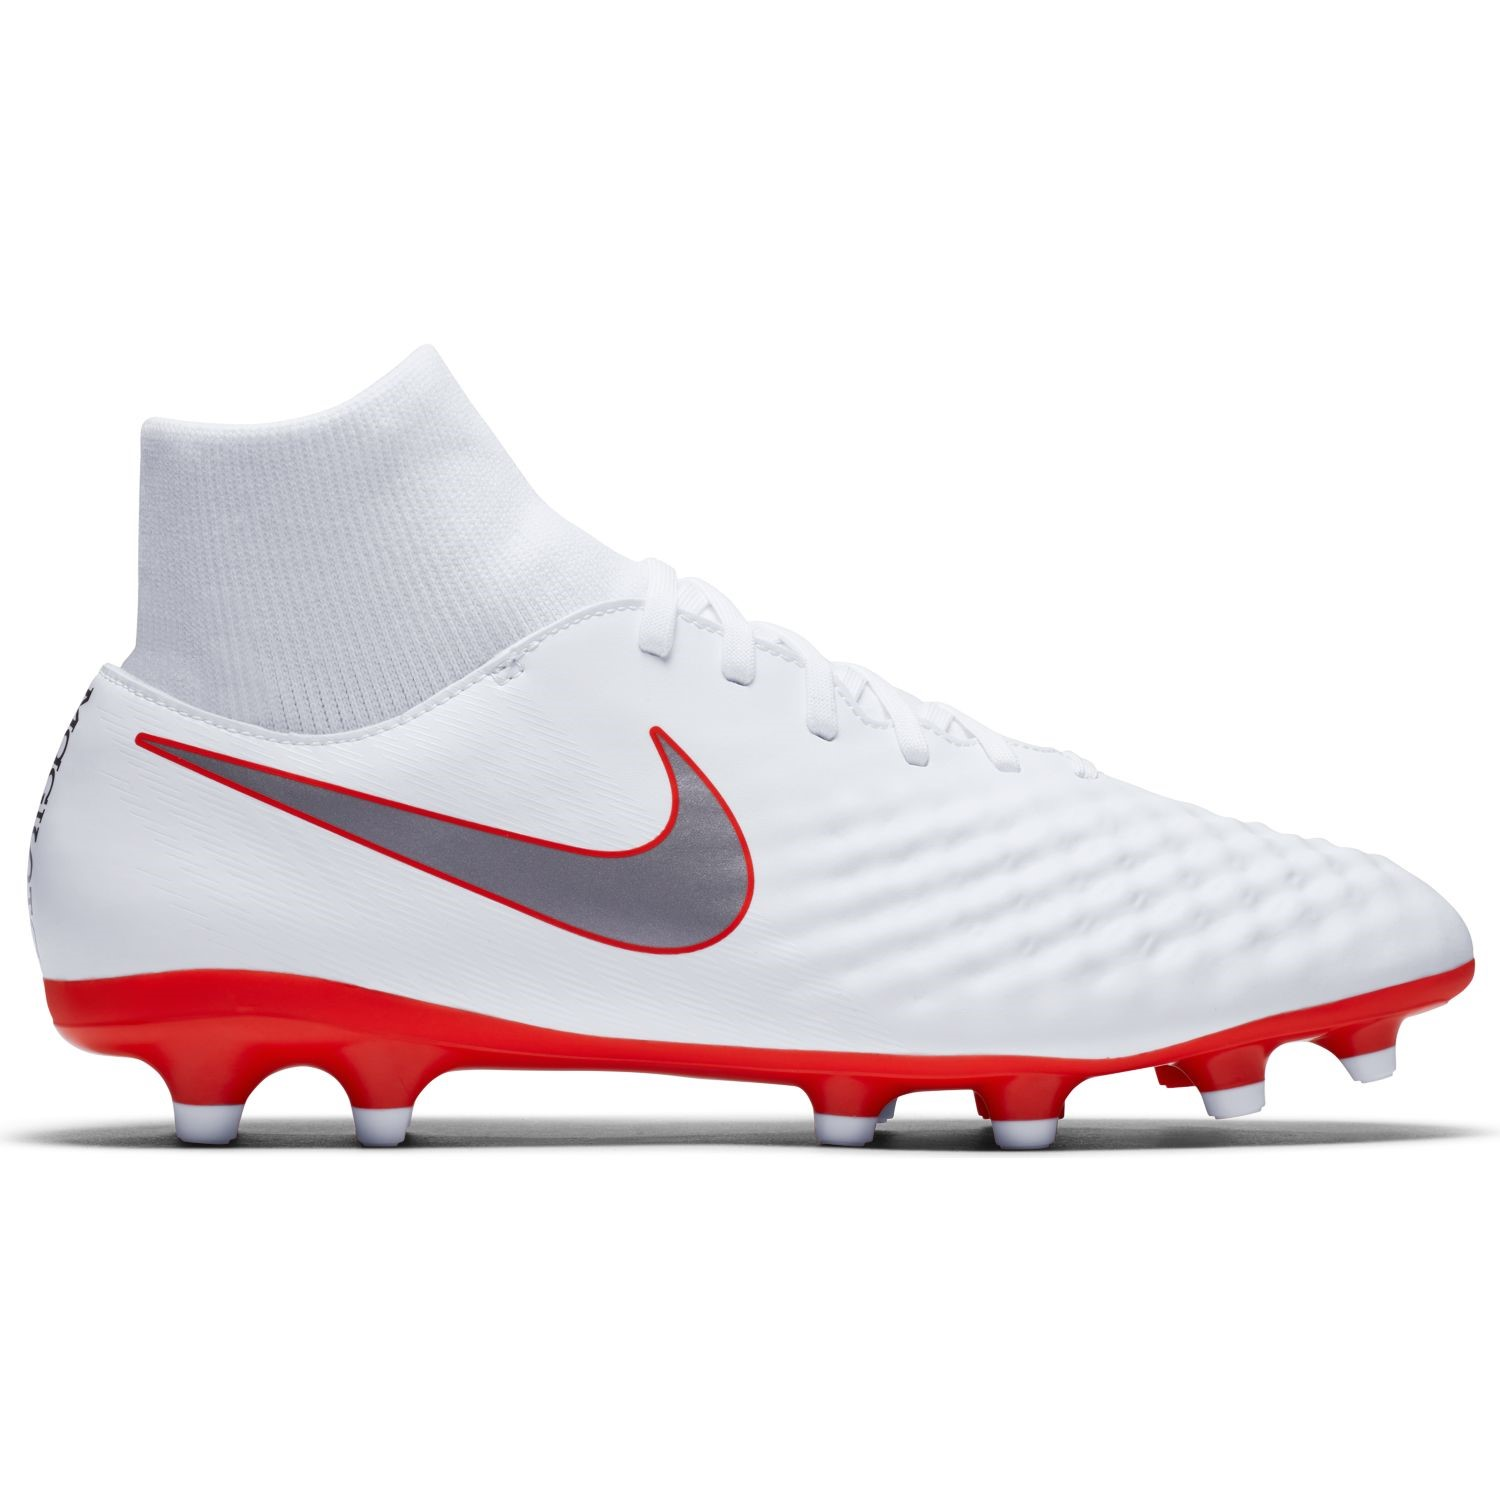 official photos c626e cdc65 Nike Magista Obra II Academy DF FG - Mens Football Boots - WhiteMetallic